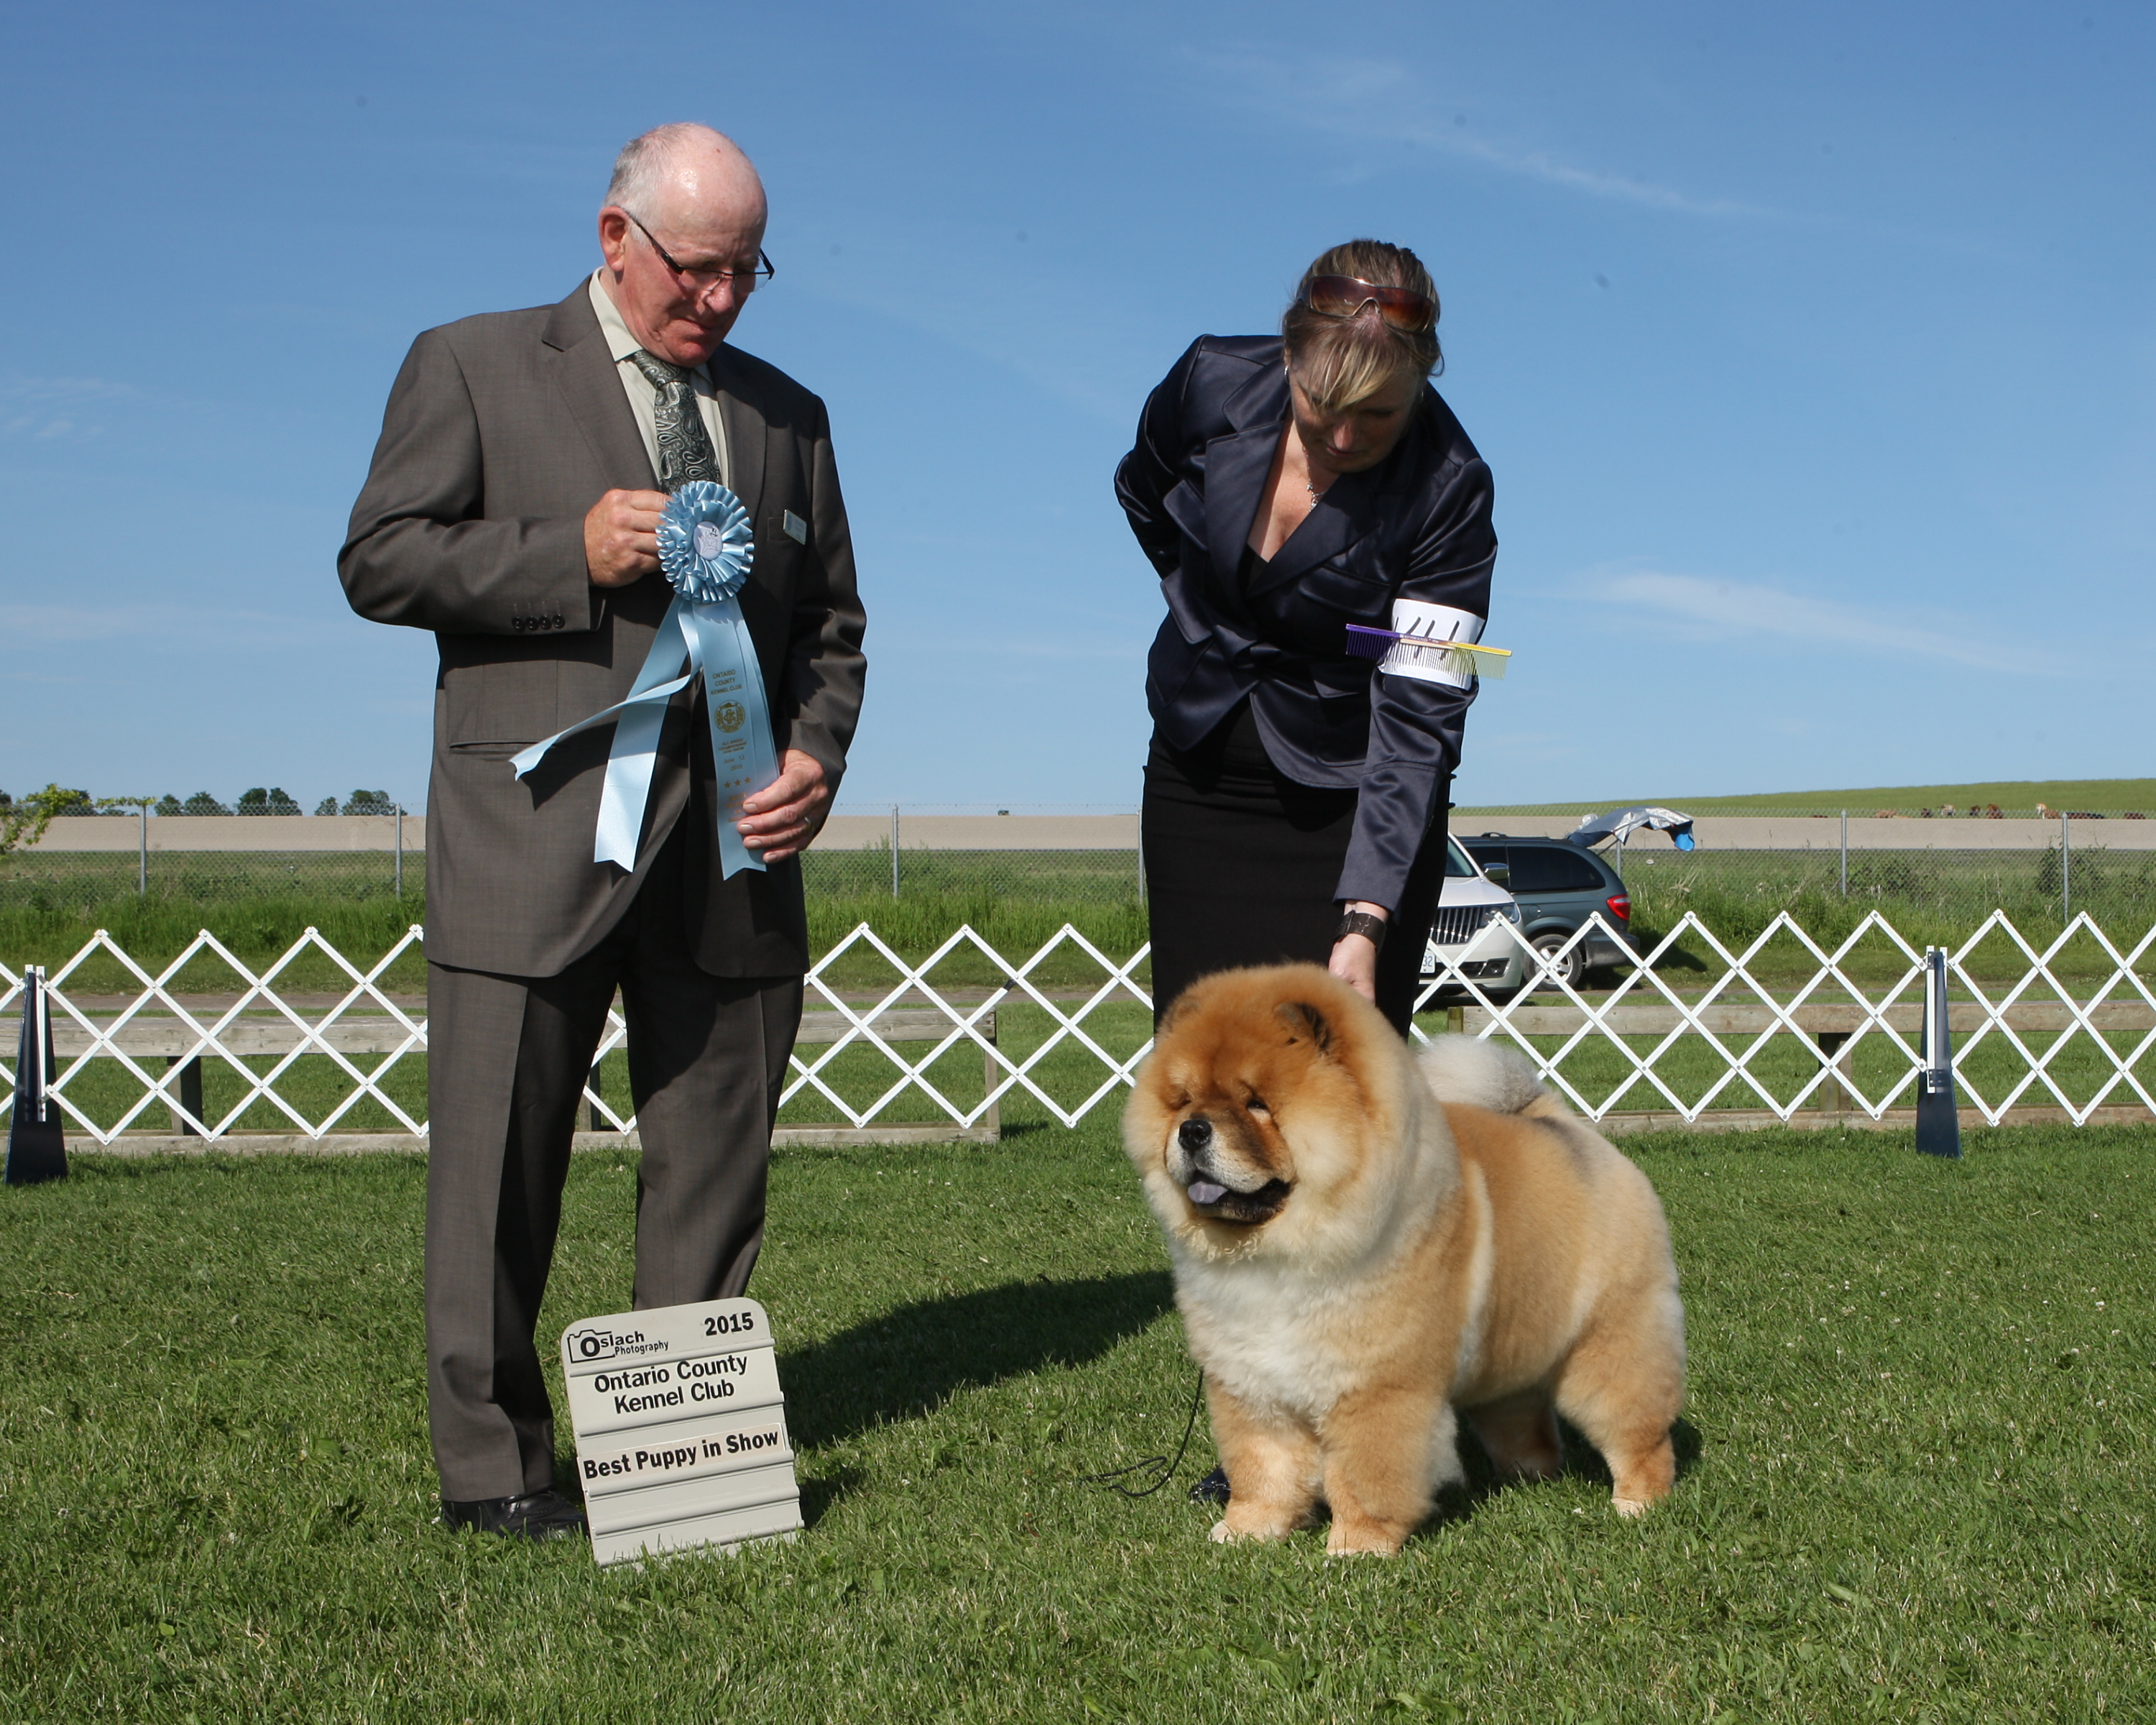 Best Puppy in Show Day 2 - Chow Chow